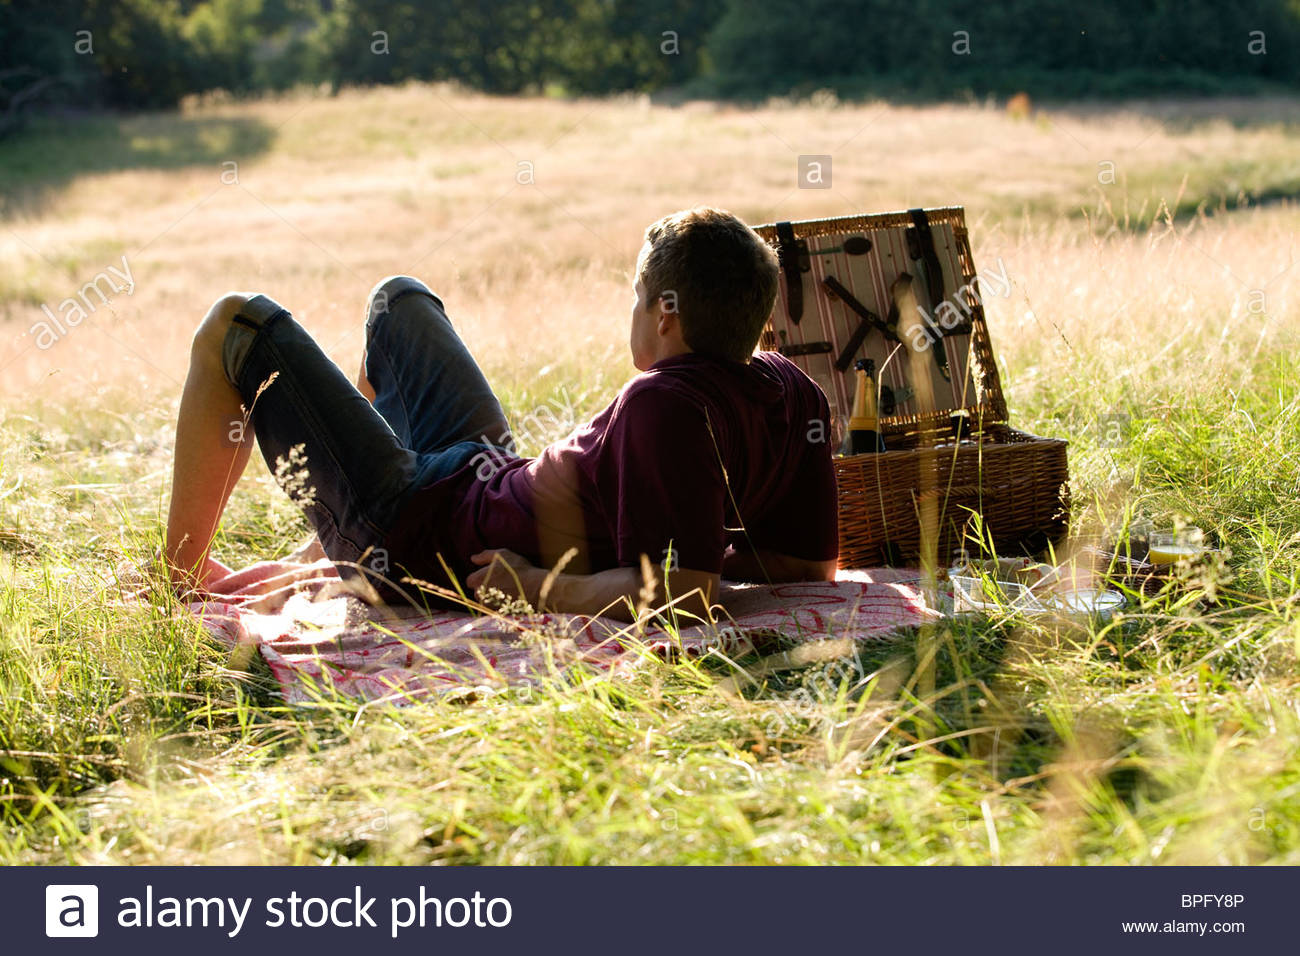 A young man sitting on the grass, having a picnic - Stock Image